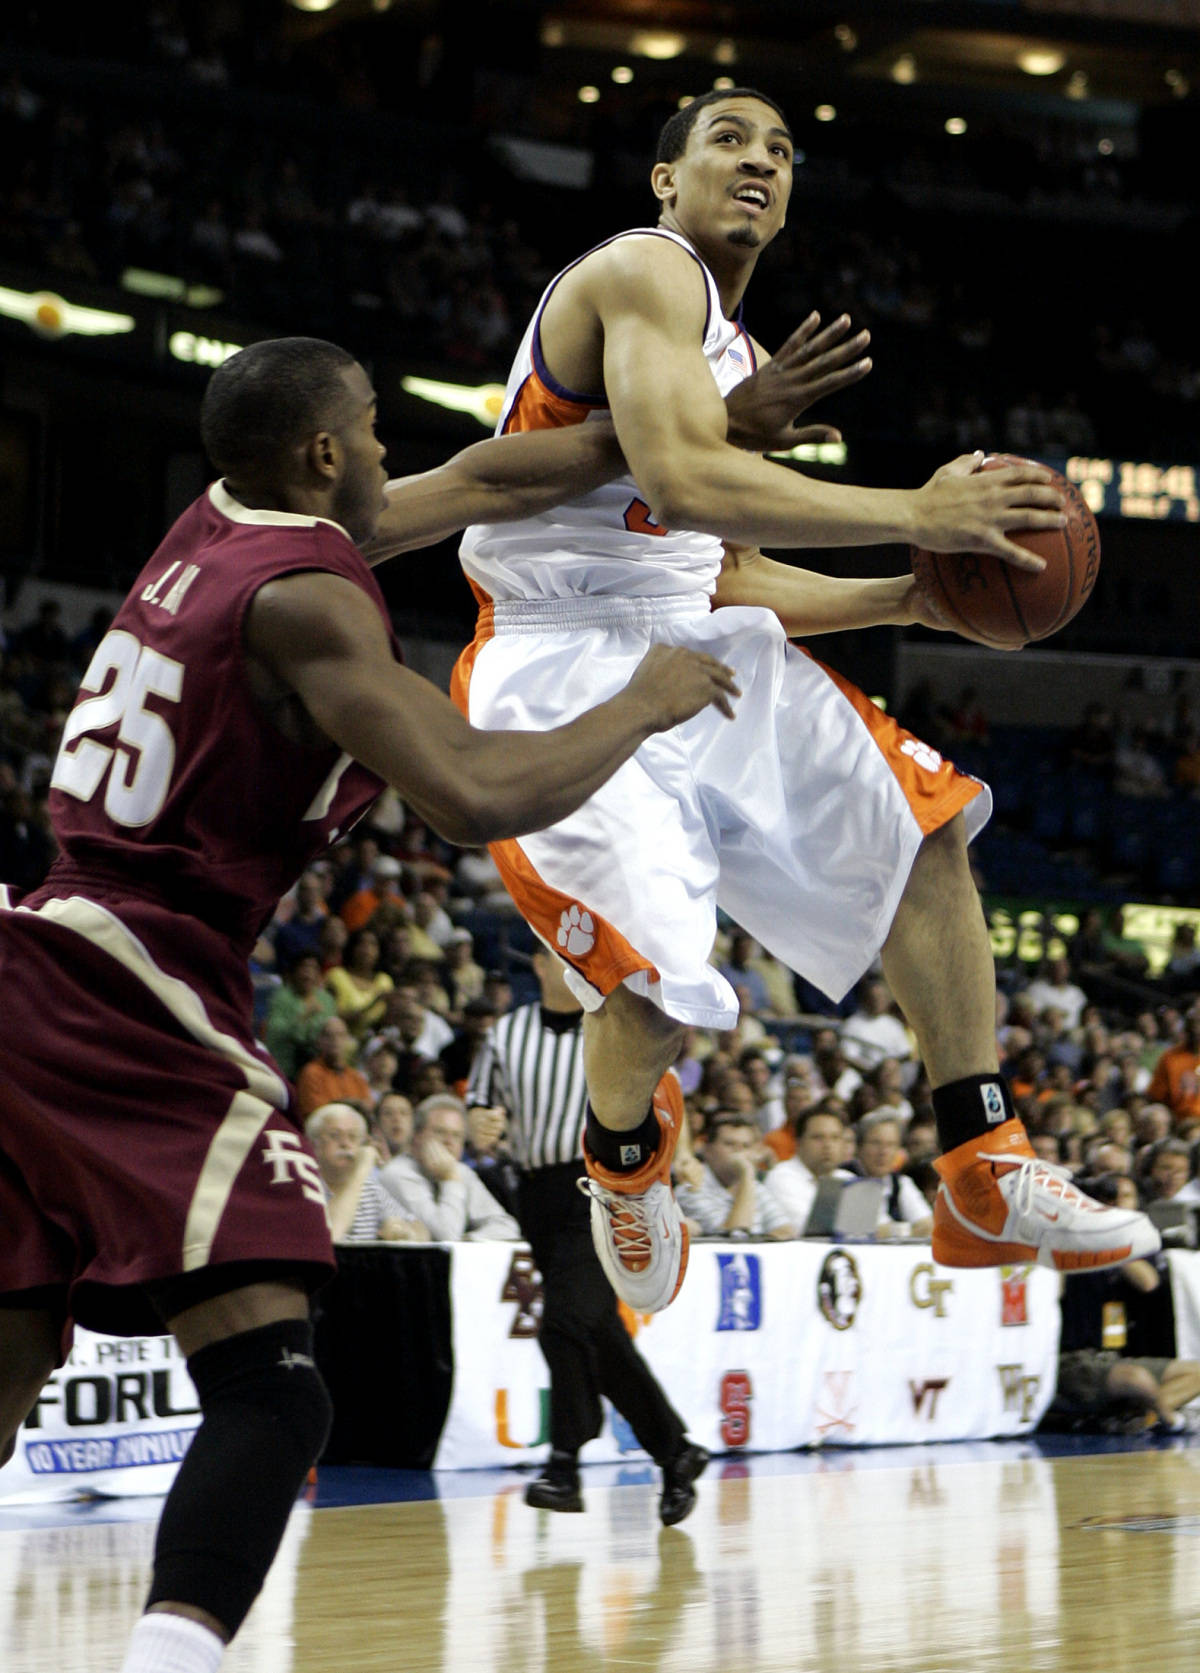 Florida State's Jason Rich (25) defends Clemson's Vernon Hamilton during the first half of a men's Atlantic Coast Conference basketball tournament game in Tampa, Fla., Thursday, March 8, 2007. (AP Photo/David J. Phillip)